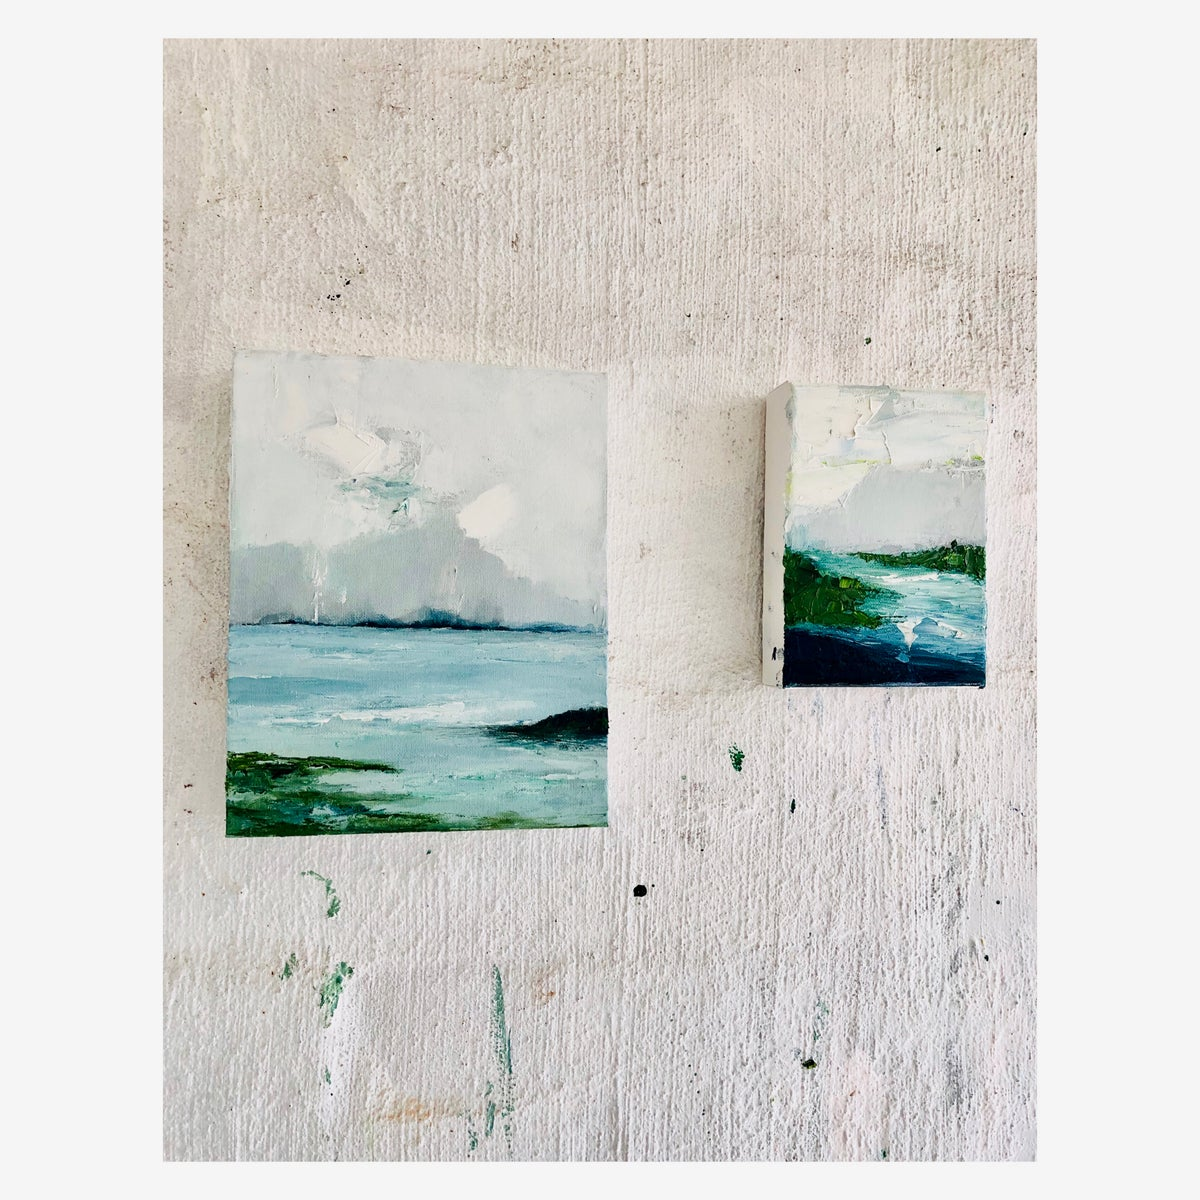 Image of Original 'Across the Bay' 2019 Oil on canvas